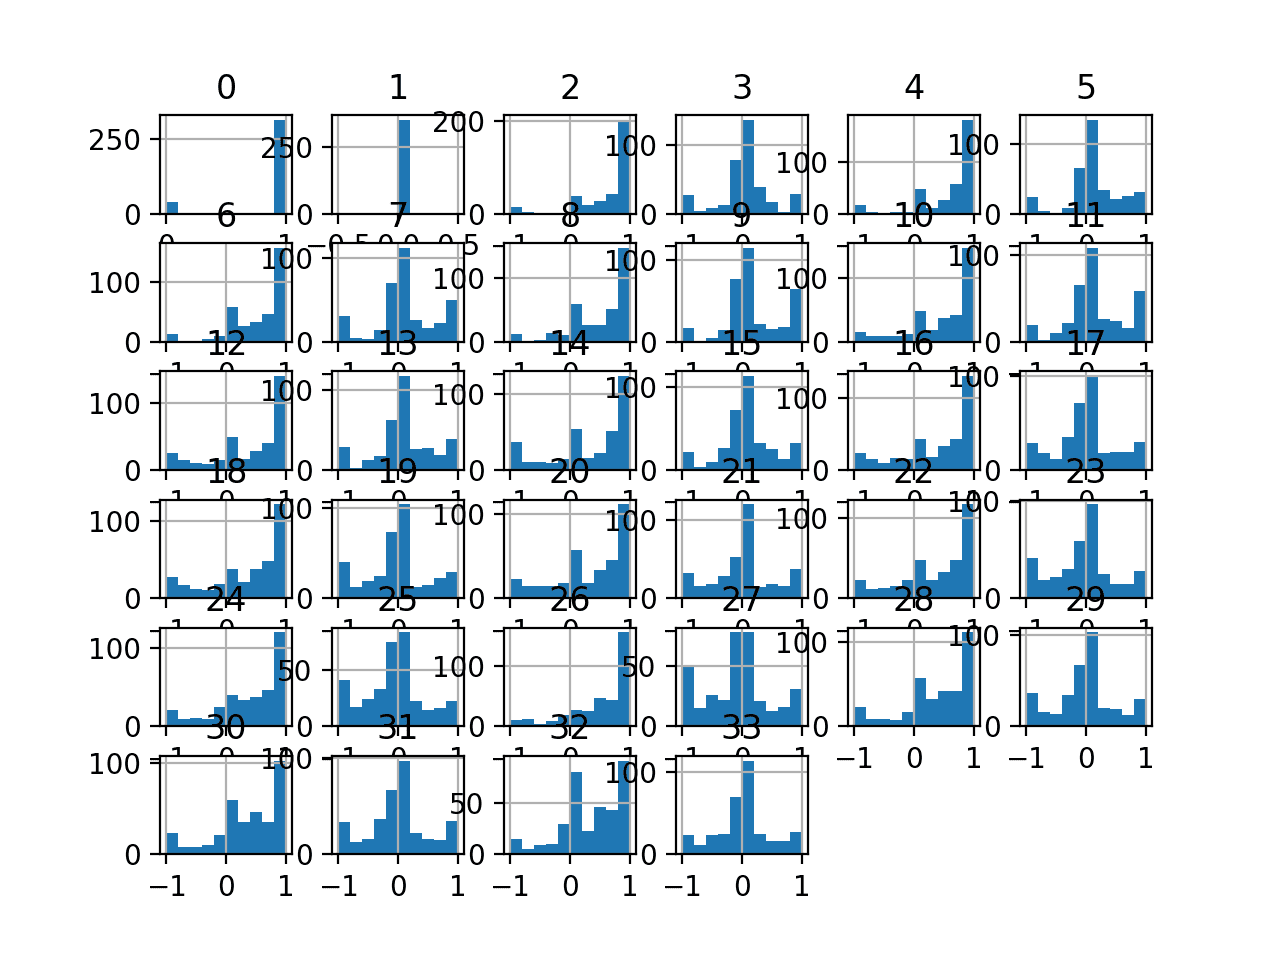 Histograms of the Ionosphere Classification Dataset